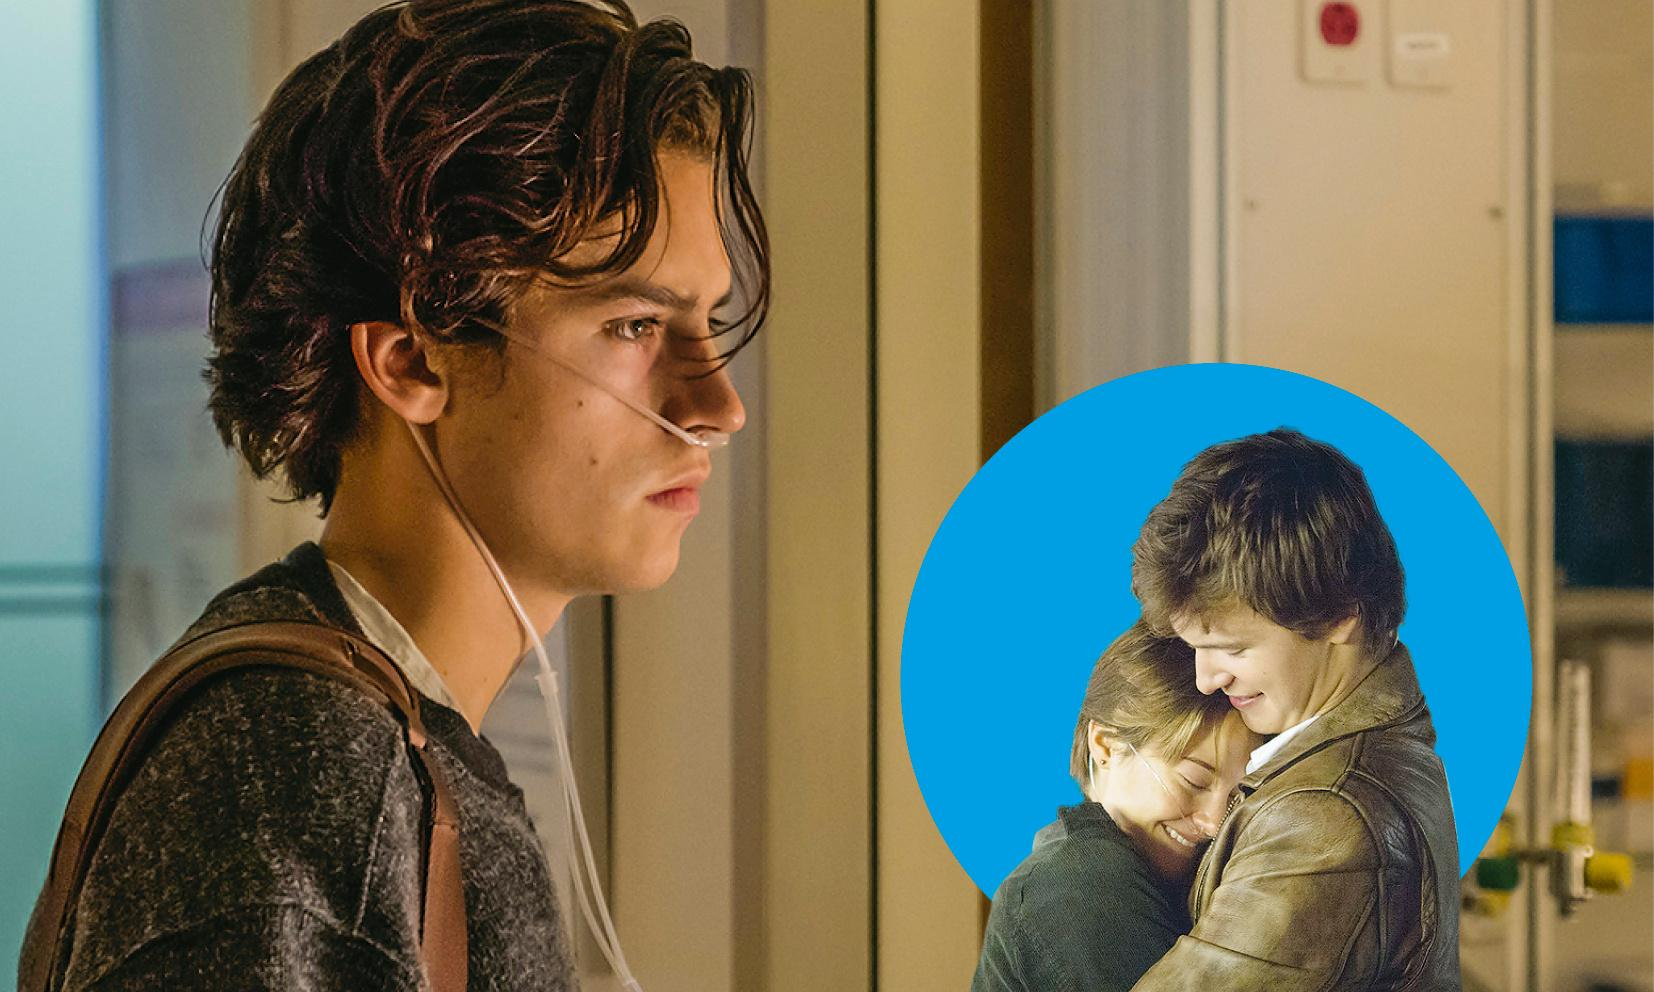 Dying of the light: why Hollywood needs to get over its obsession with terminally ill teens